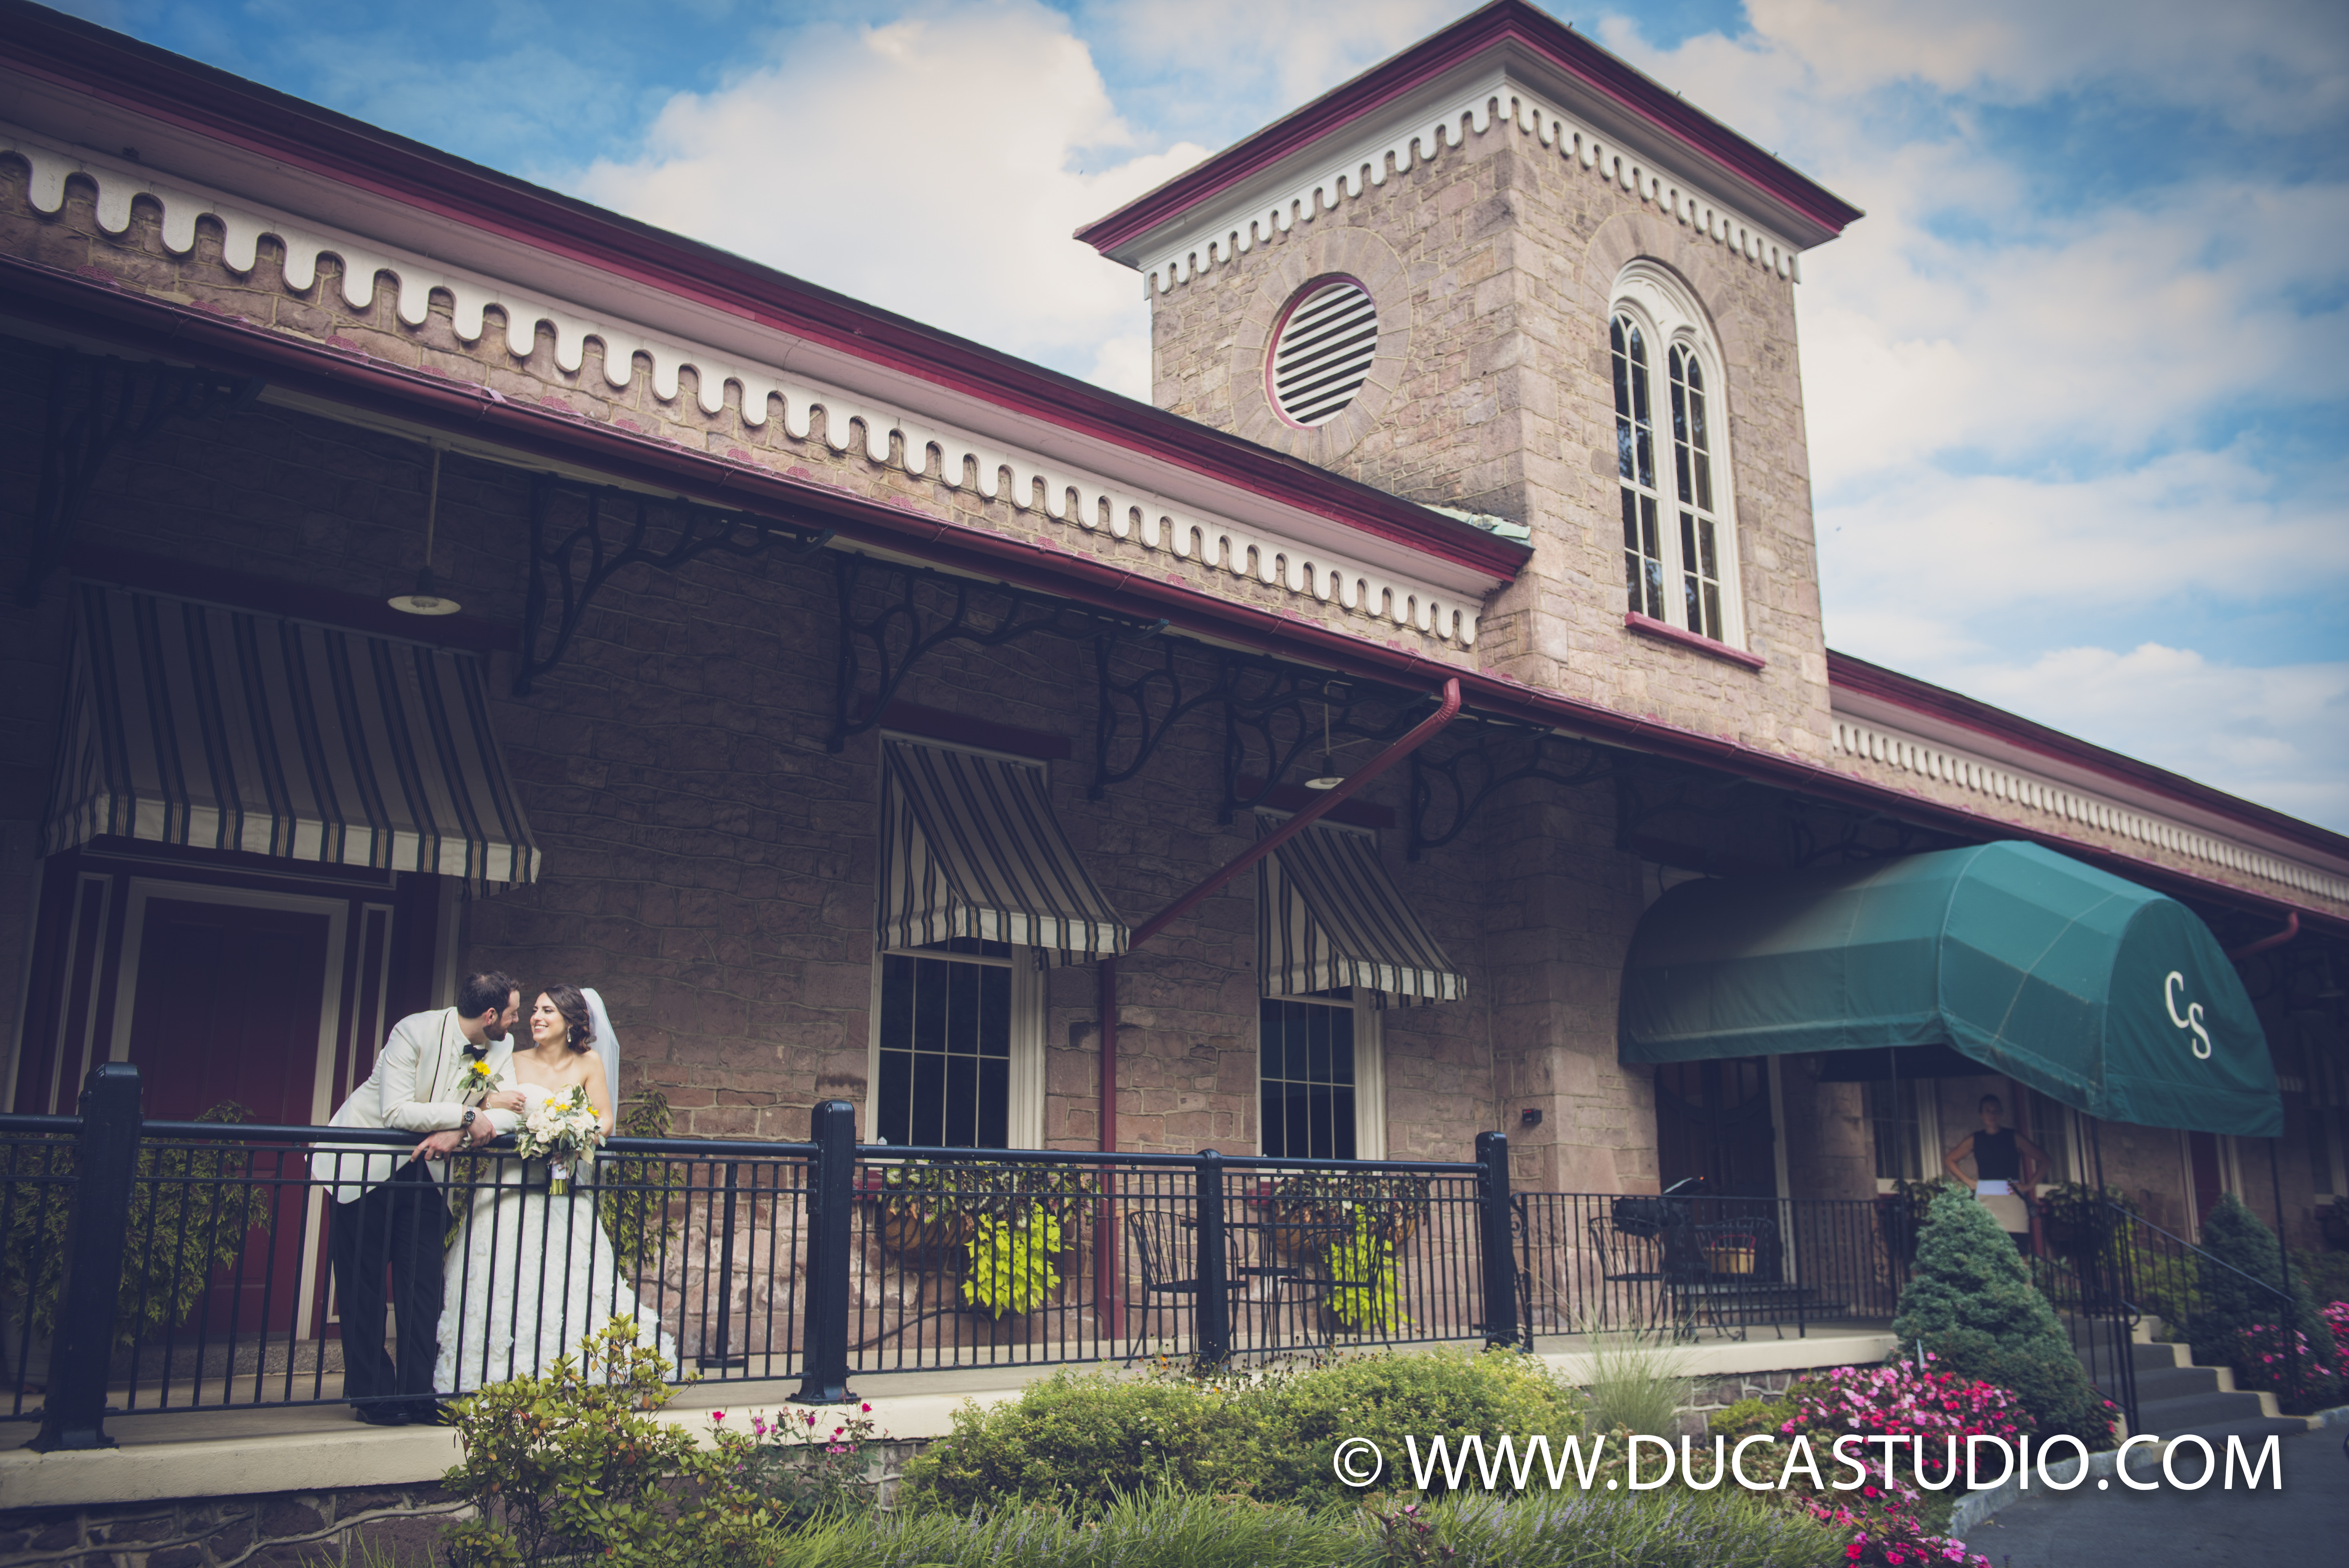 What Makes This Locale So Special Unique Venue Was Built In 1858 And Served As A Passenger Train Station Serviced By The Reading Railroad Until 1972